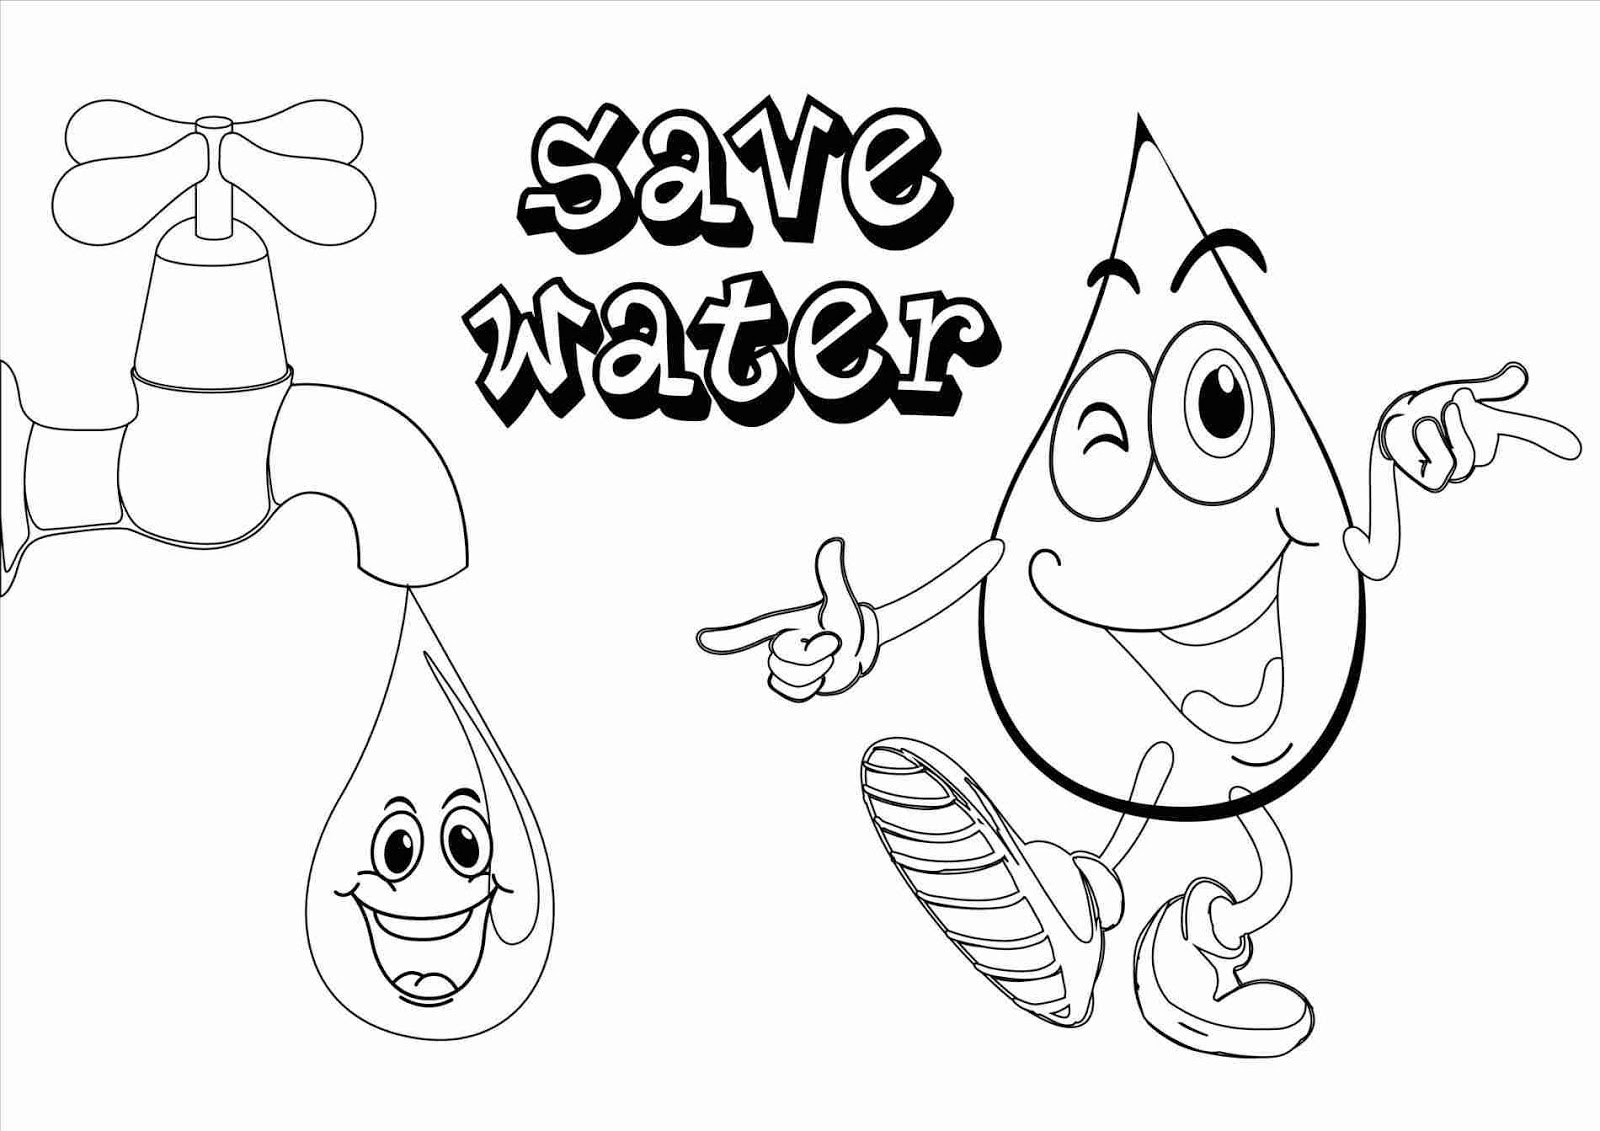 Save water poster for school class 7812 images sketch